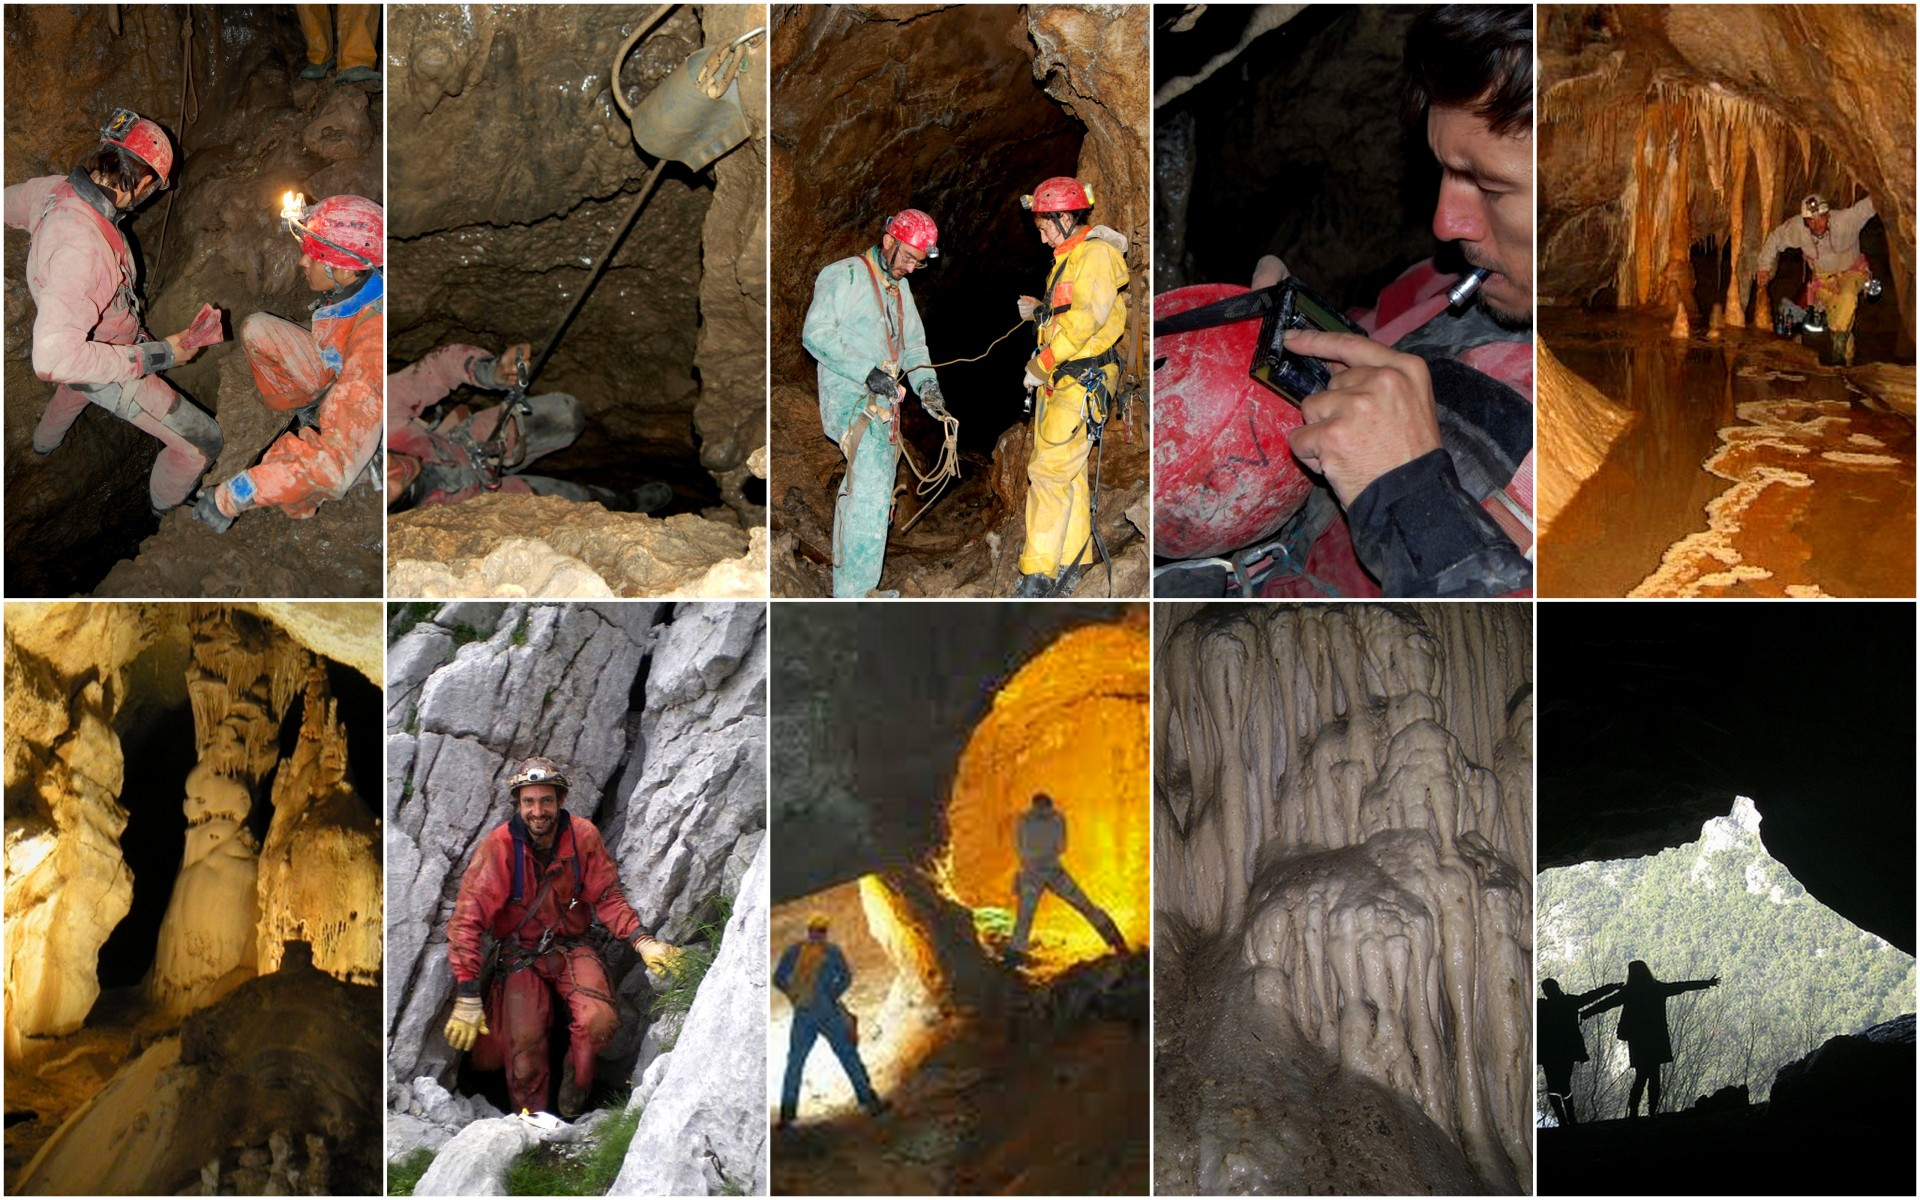 Caving in Albania with Zbulo! explore the Pellumbas, Arapi or Radohima Cave or head to Kosovo for the Rugova Gorge and Grand Caynon cave system